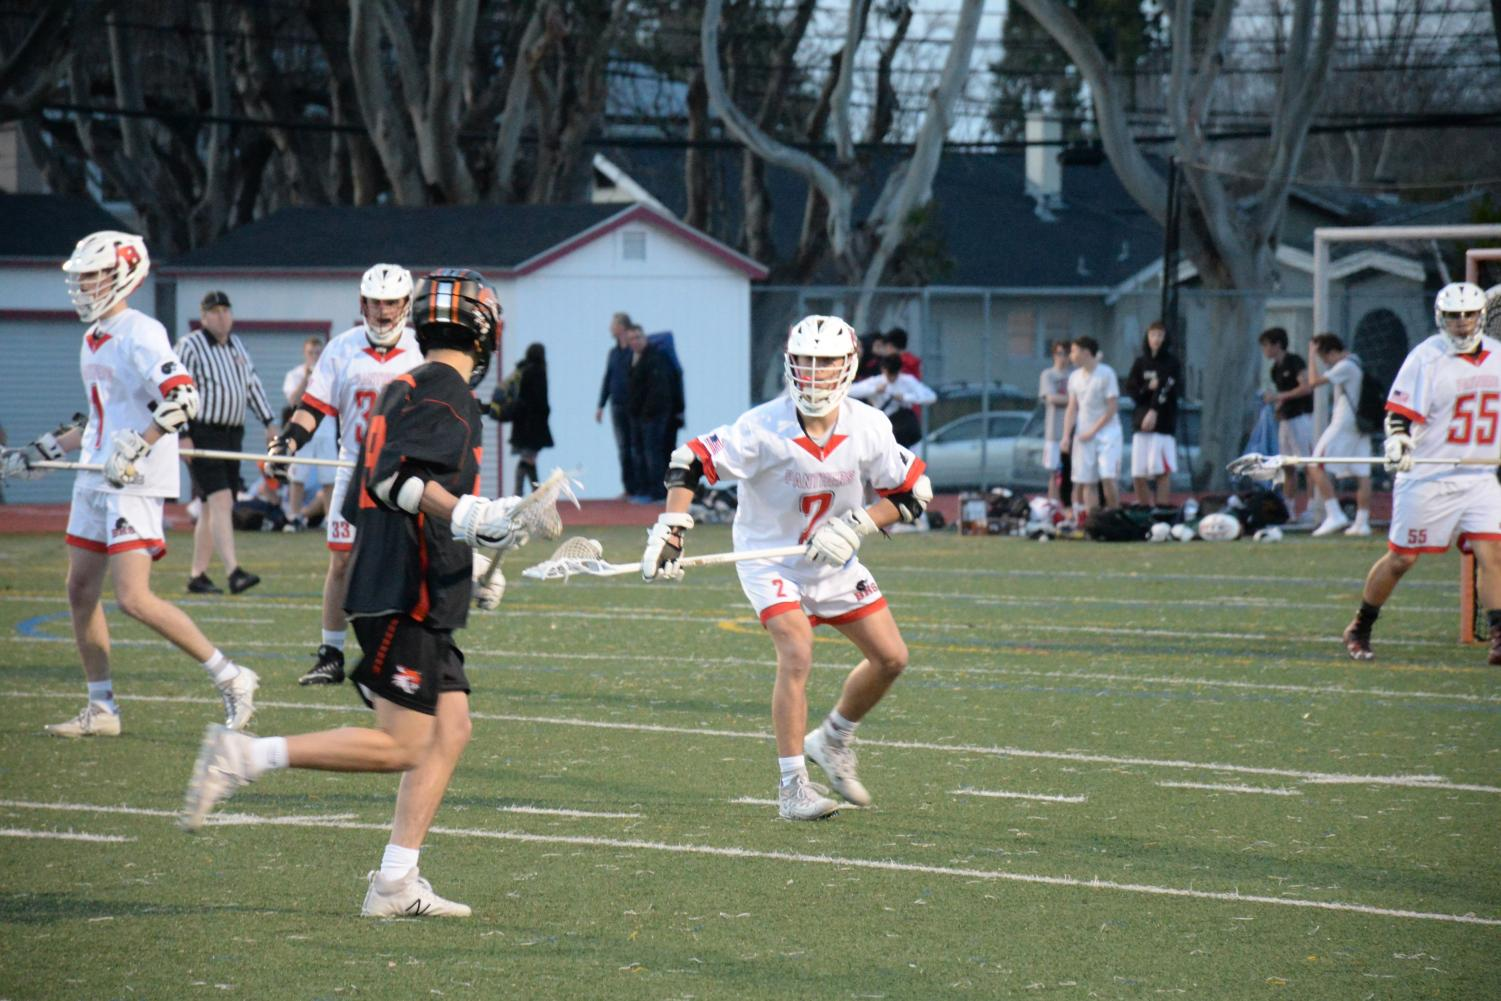 Junior middy Kyle Botelho takes up a defensive stance against Los Gatos.